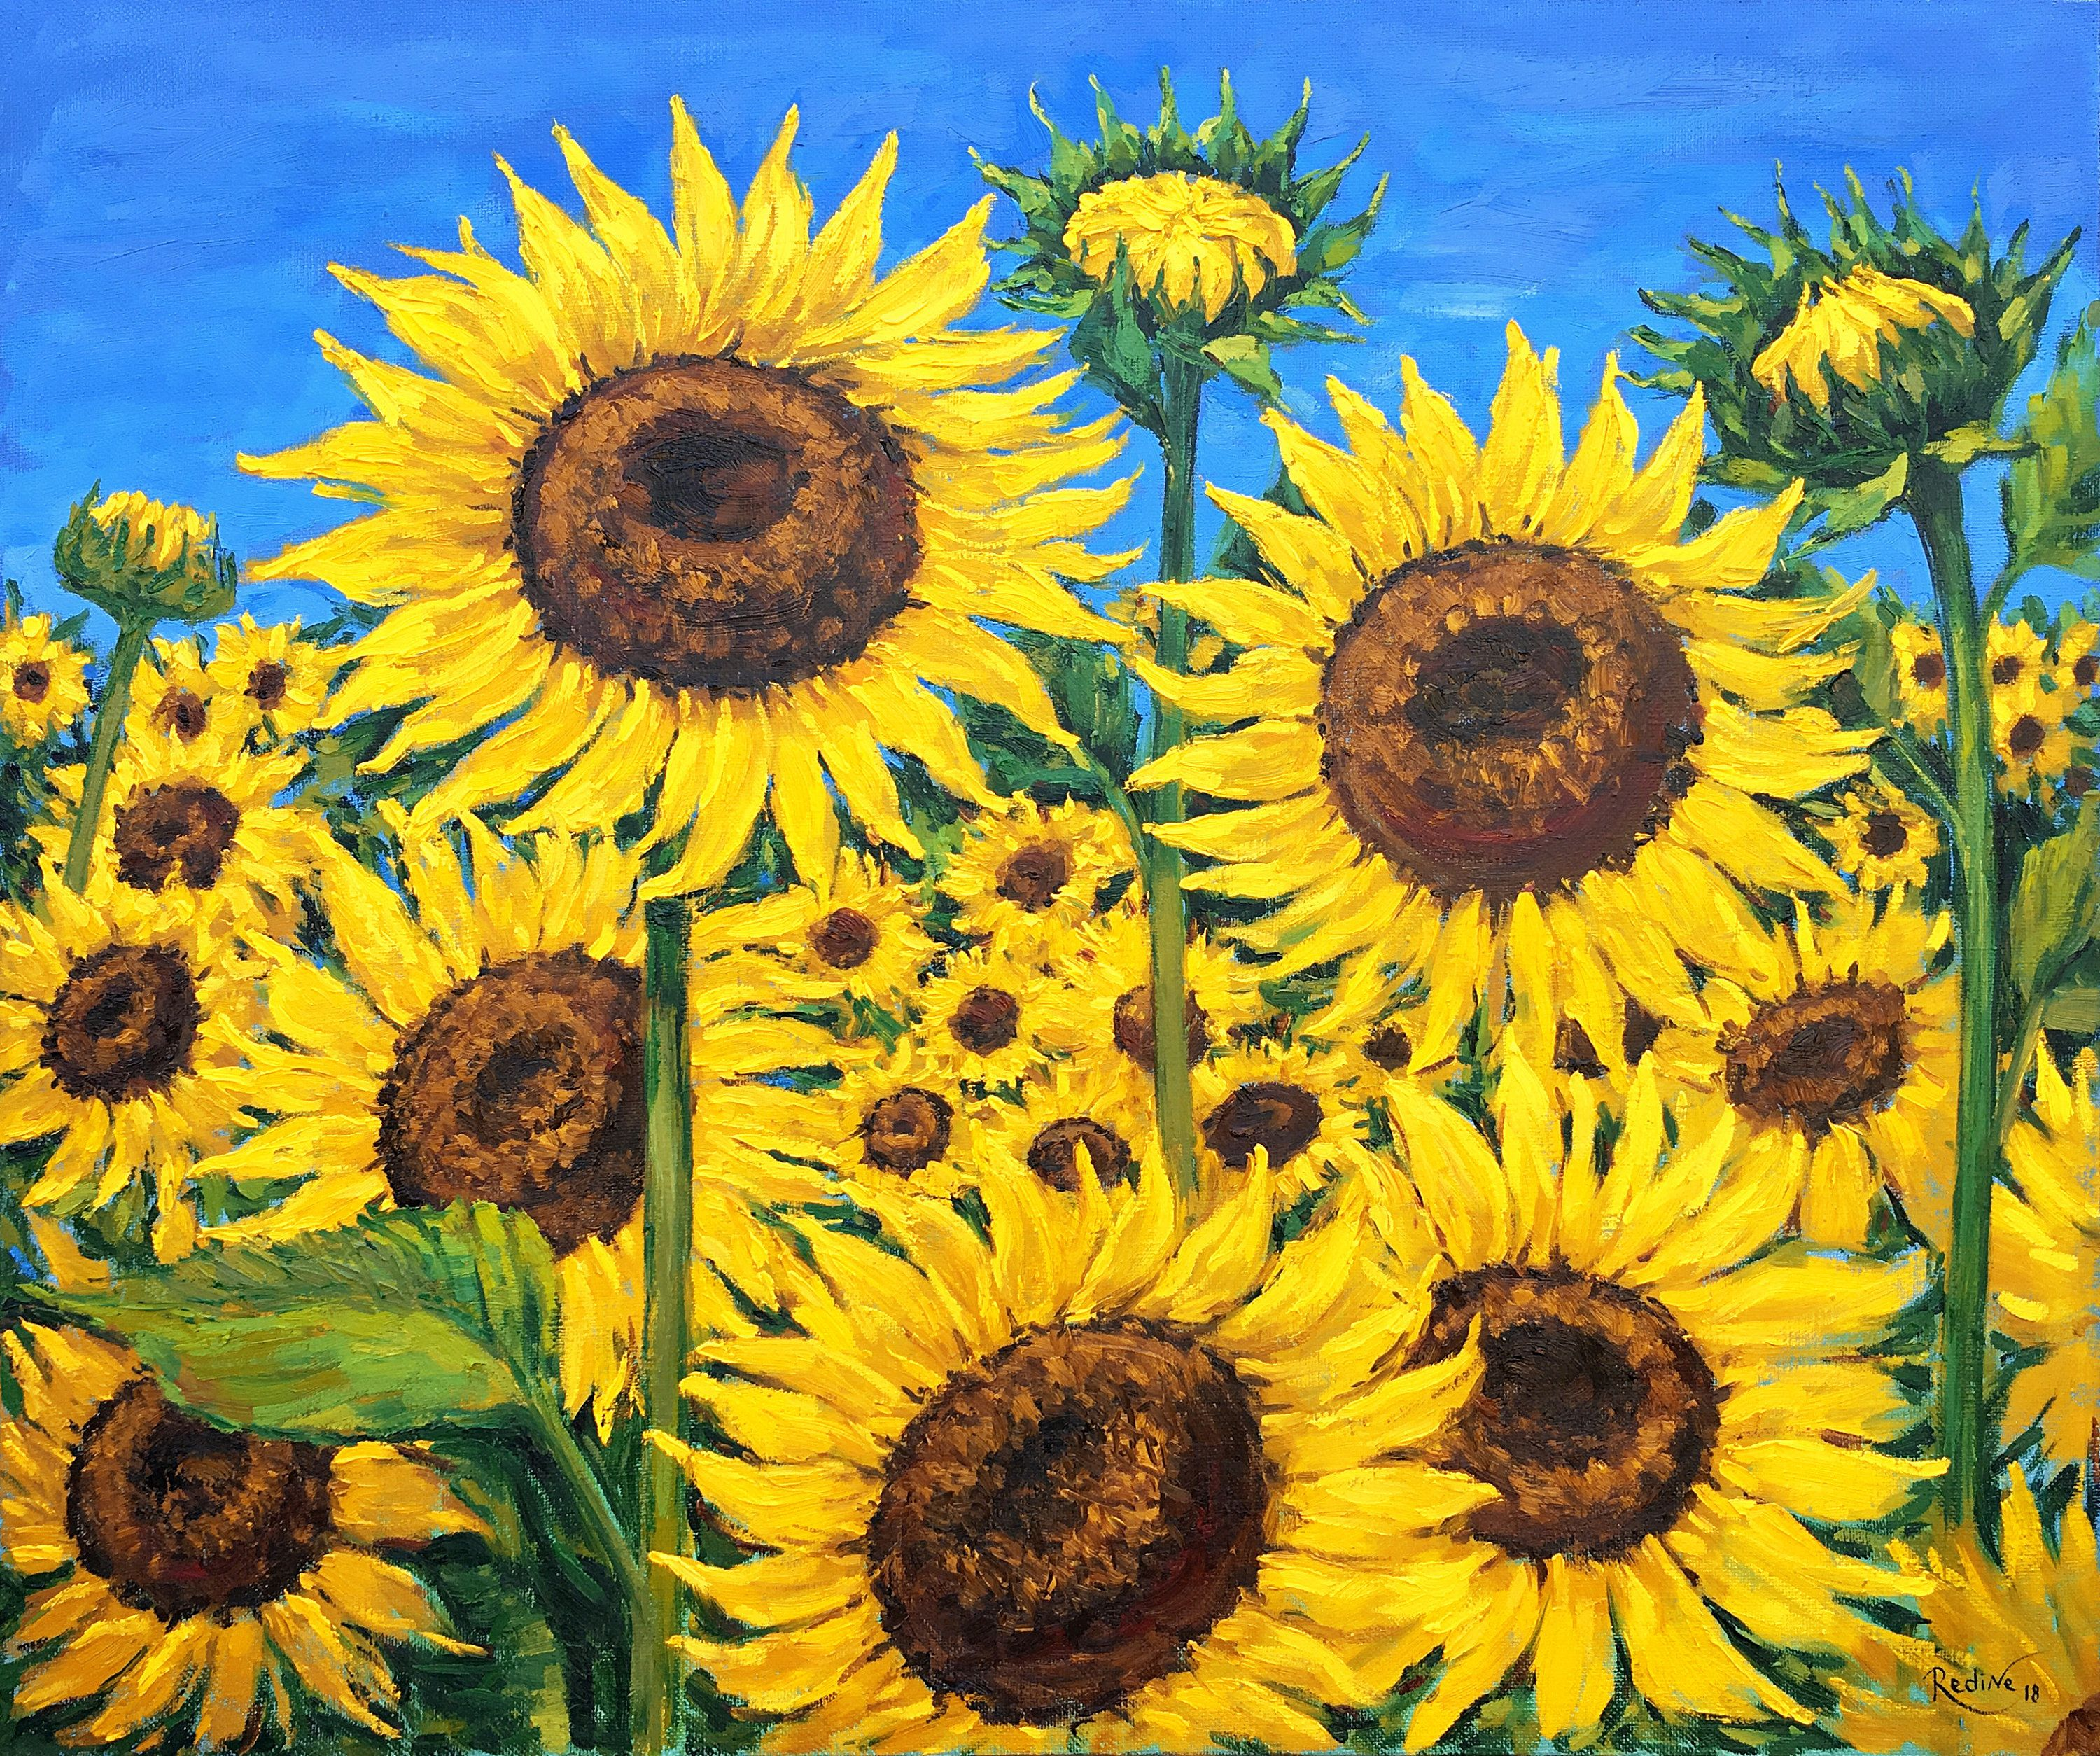 Sunflowers Original Oil Painting On Canvas By Irina Redine From My Etsy Shop Https Etsy Me 2wmbgz Sunflower Wall Art Sunflower Painting Simple Oil Painting